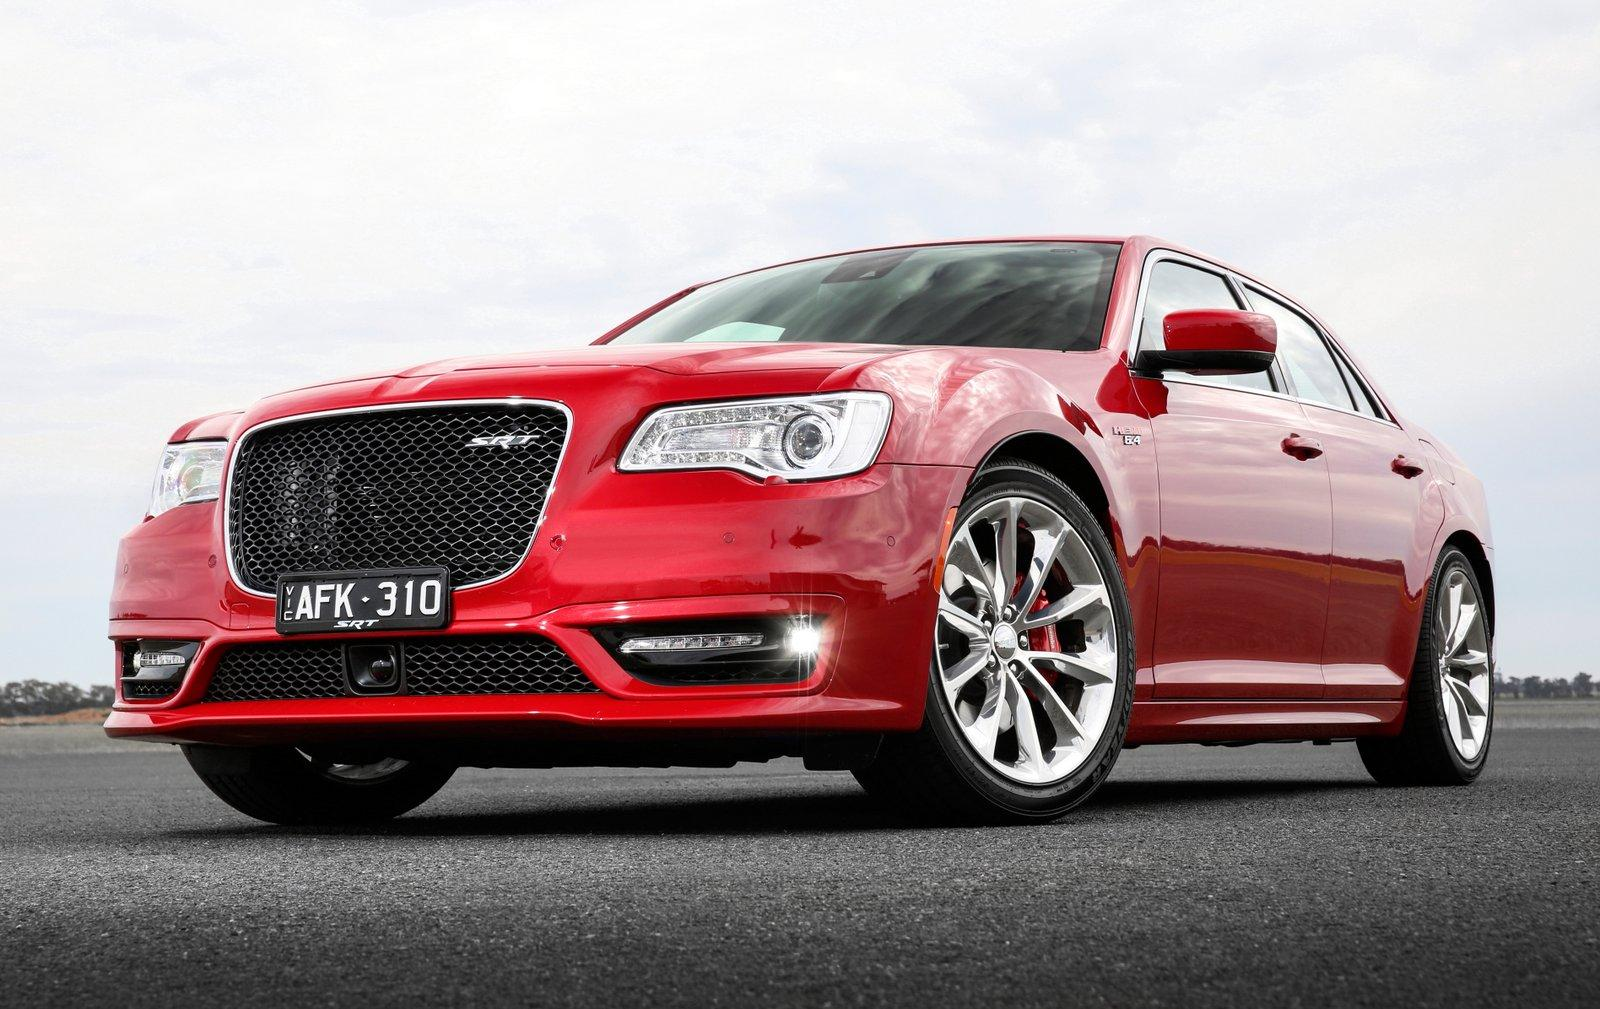 Chrysler 300 2016 Hemi >> 2016 Chrysler 300 SRT Earns 6.4L HEMI V8, Not Available in the United States of America ...